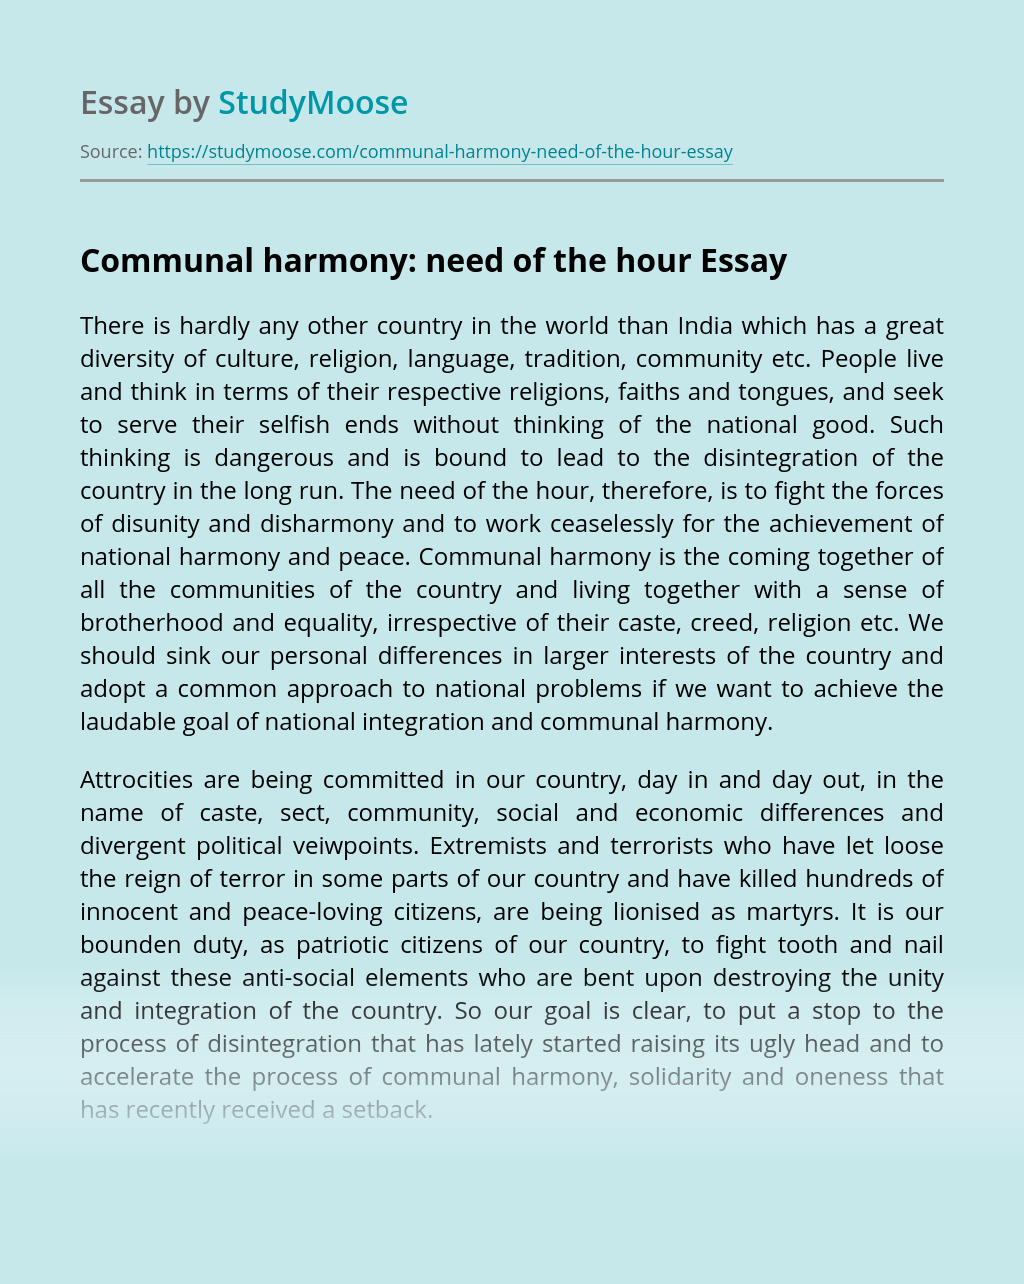 Communal harmony: need of the hour